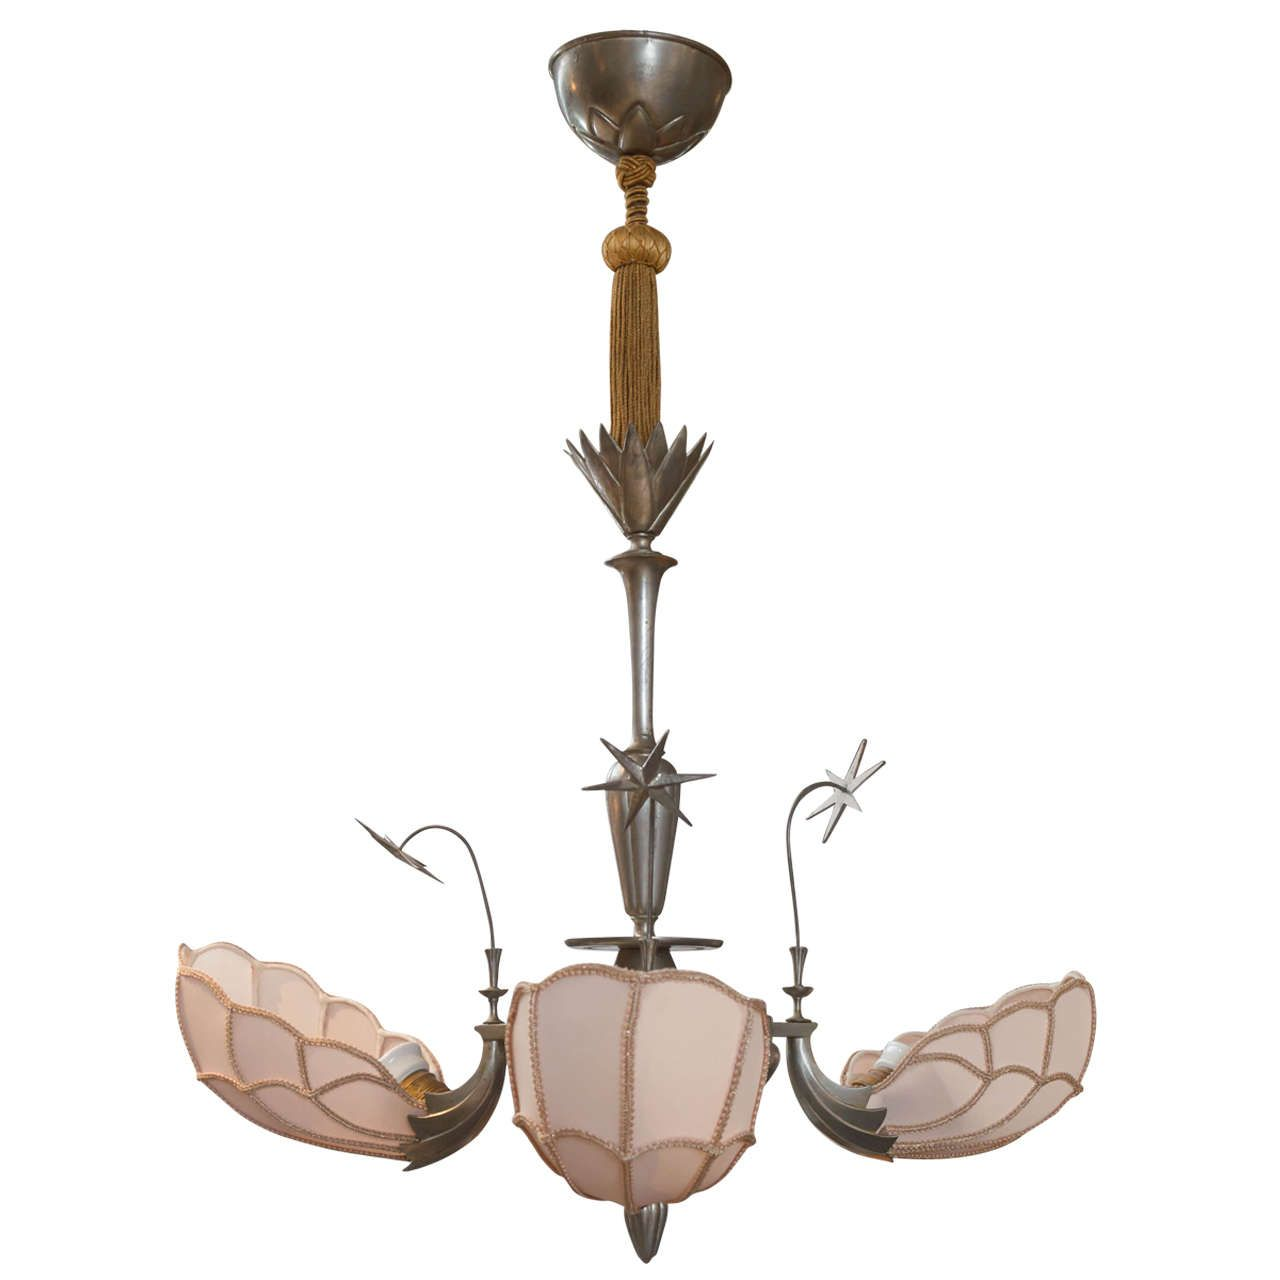 Swedish art nouveau chandelier in pewter and silk circa 1920s swedish art nouveau chandelier in pewter and silk circa 1920s from a unique collection arubaitofo Image collections